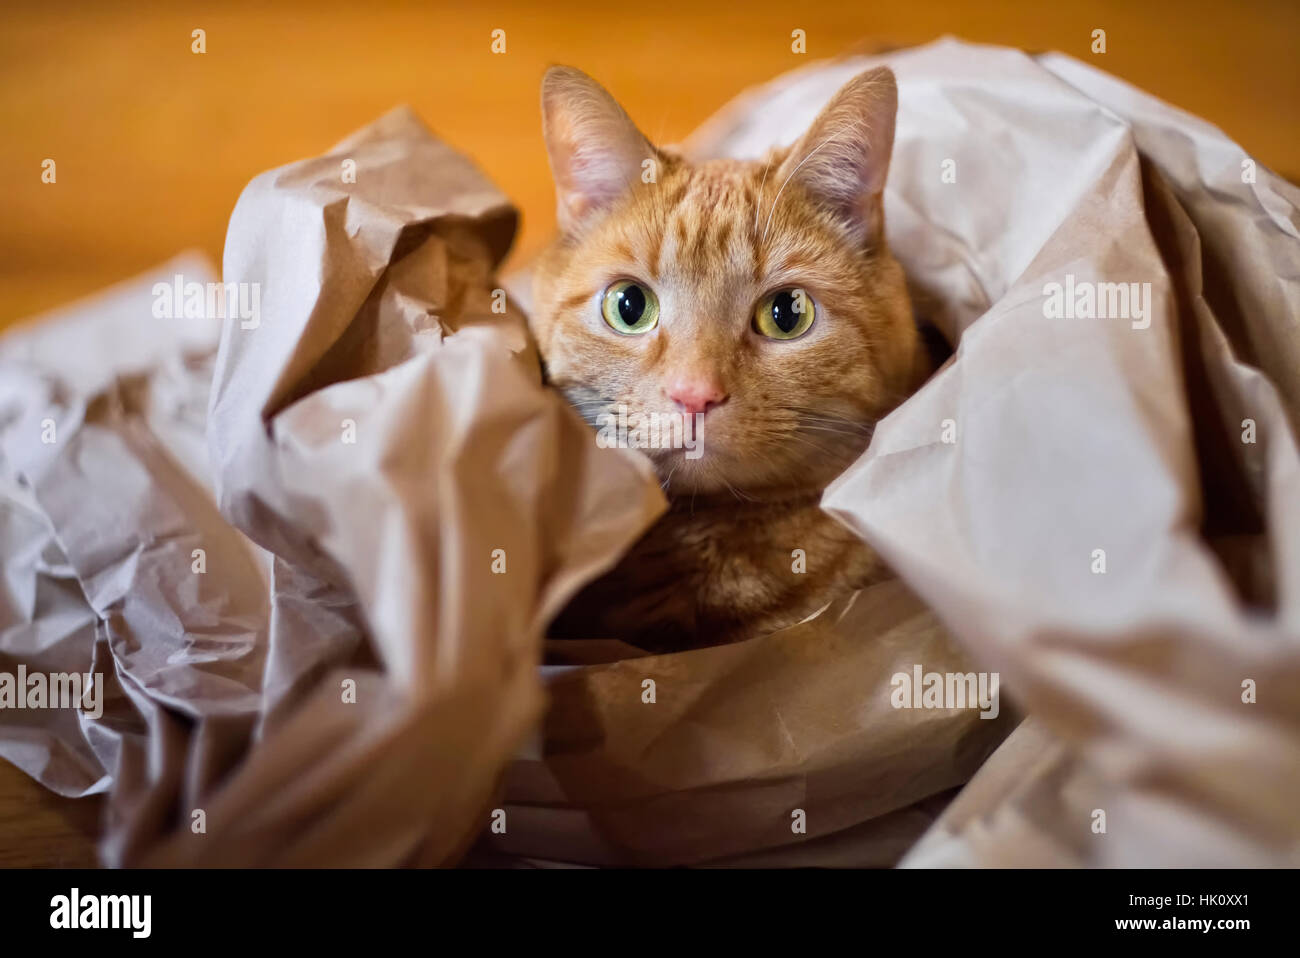 Fergus the cat in crunchy brown packing paper. - Stock Image